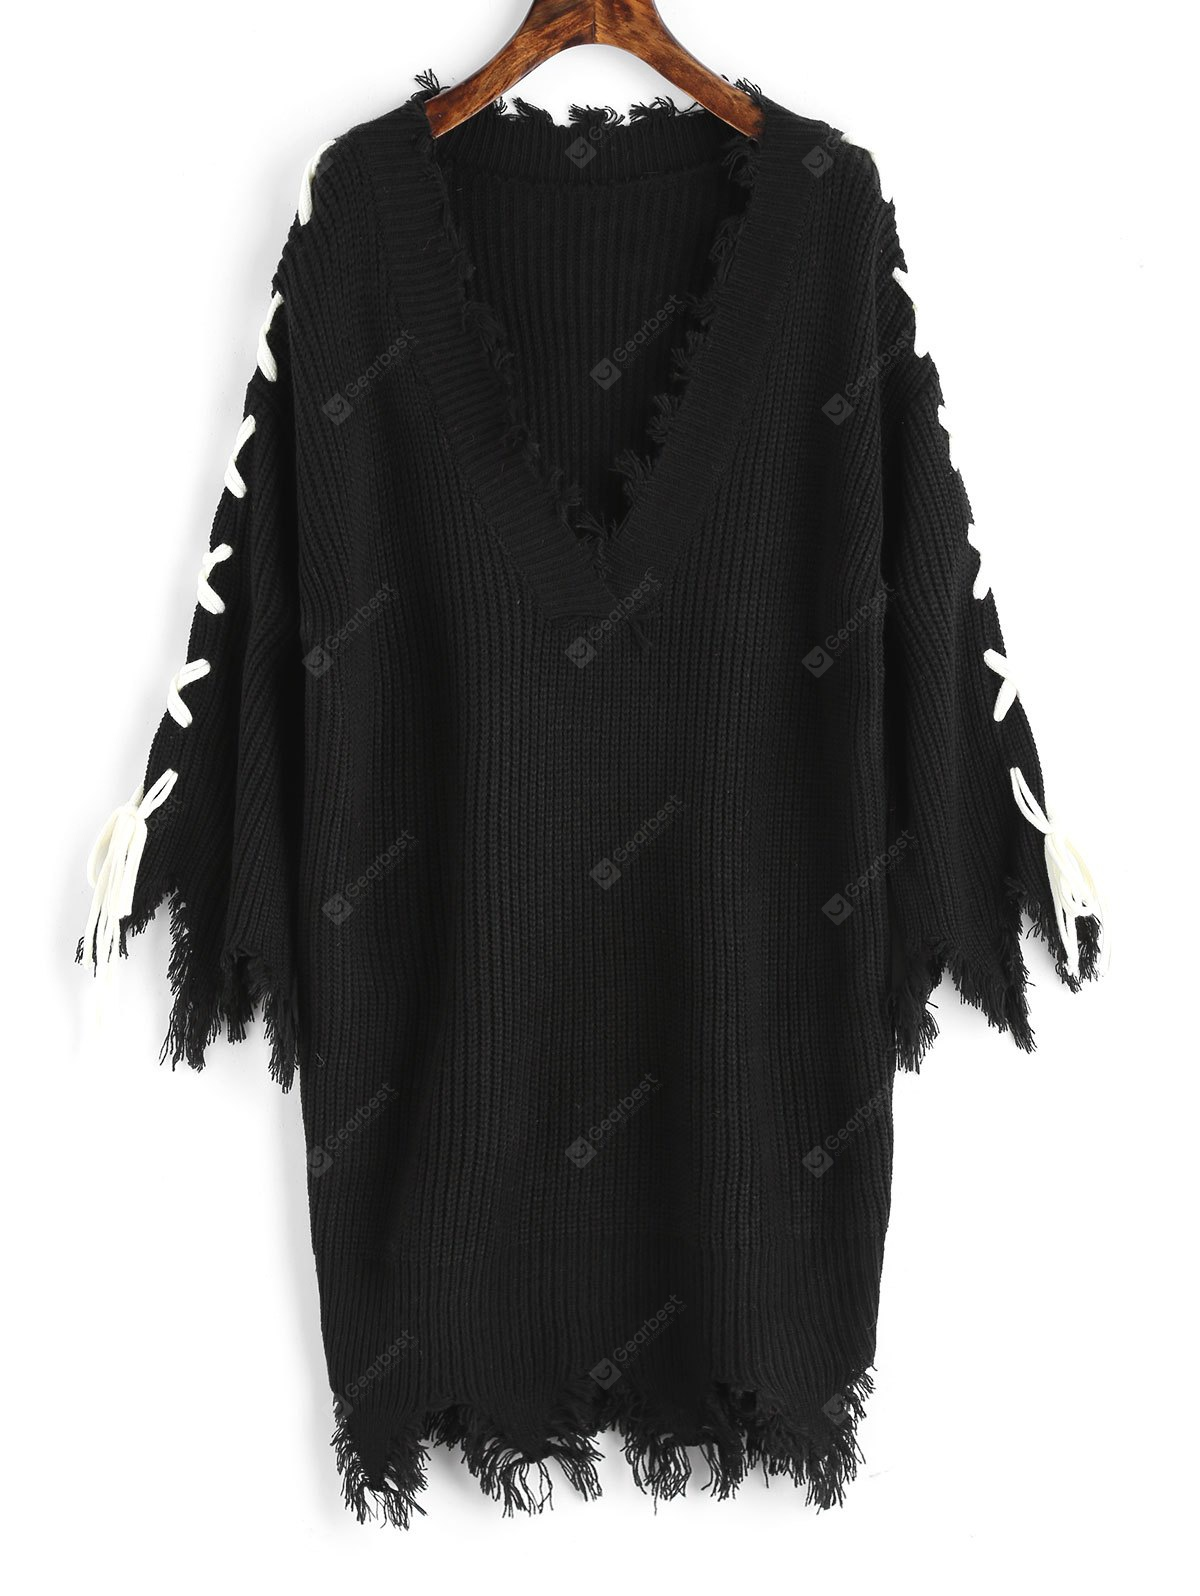 BLACK Frayed Lace Up V Neck Sweater Dress